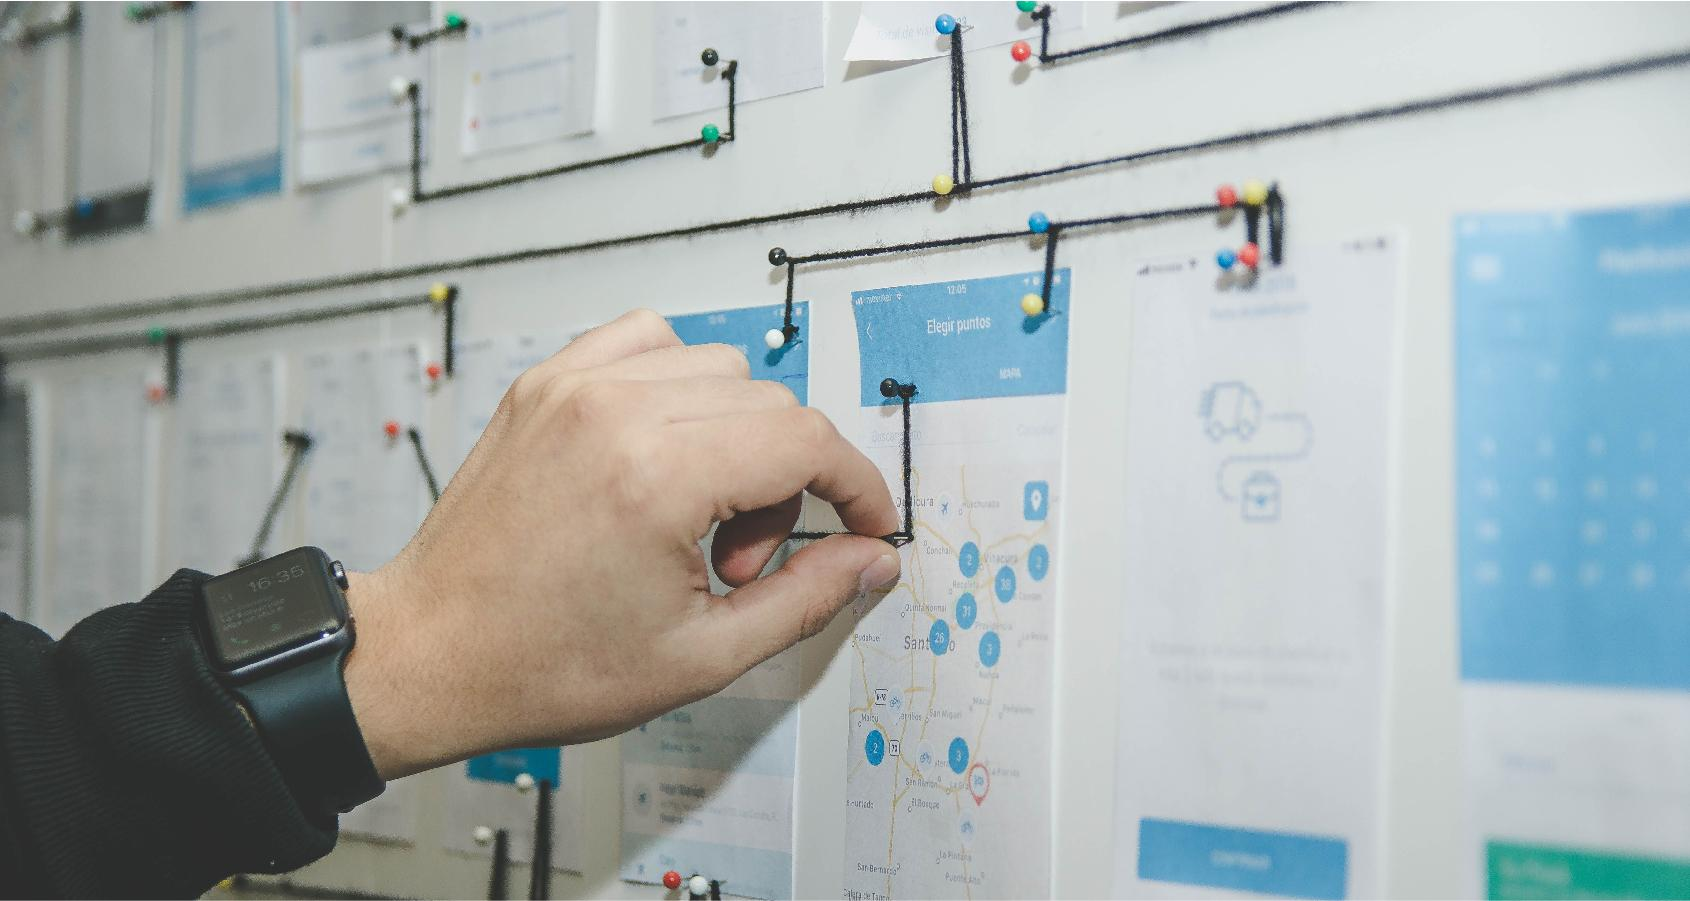 A designer uses pins and prints to determine the enterprise application UX design.